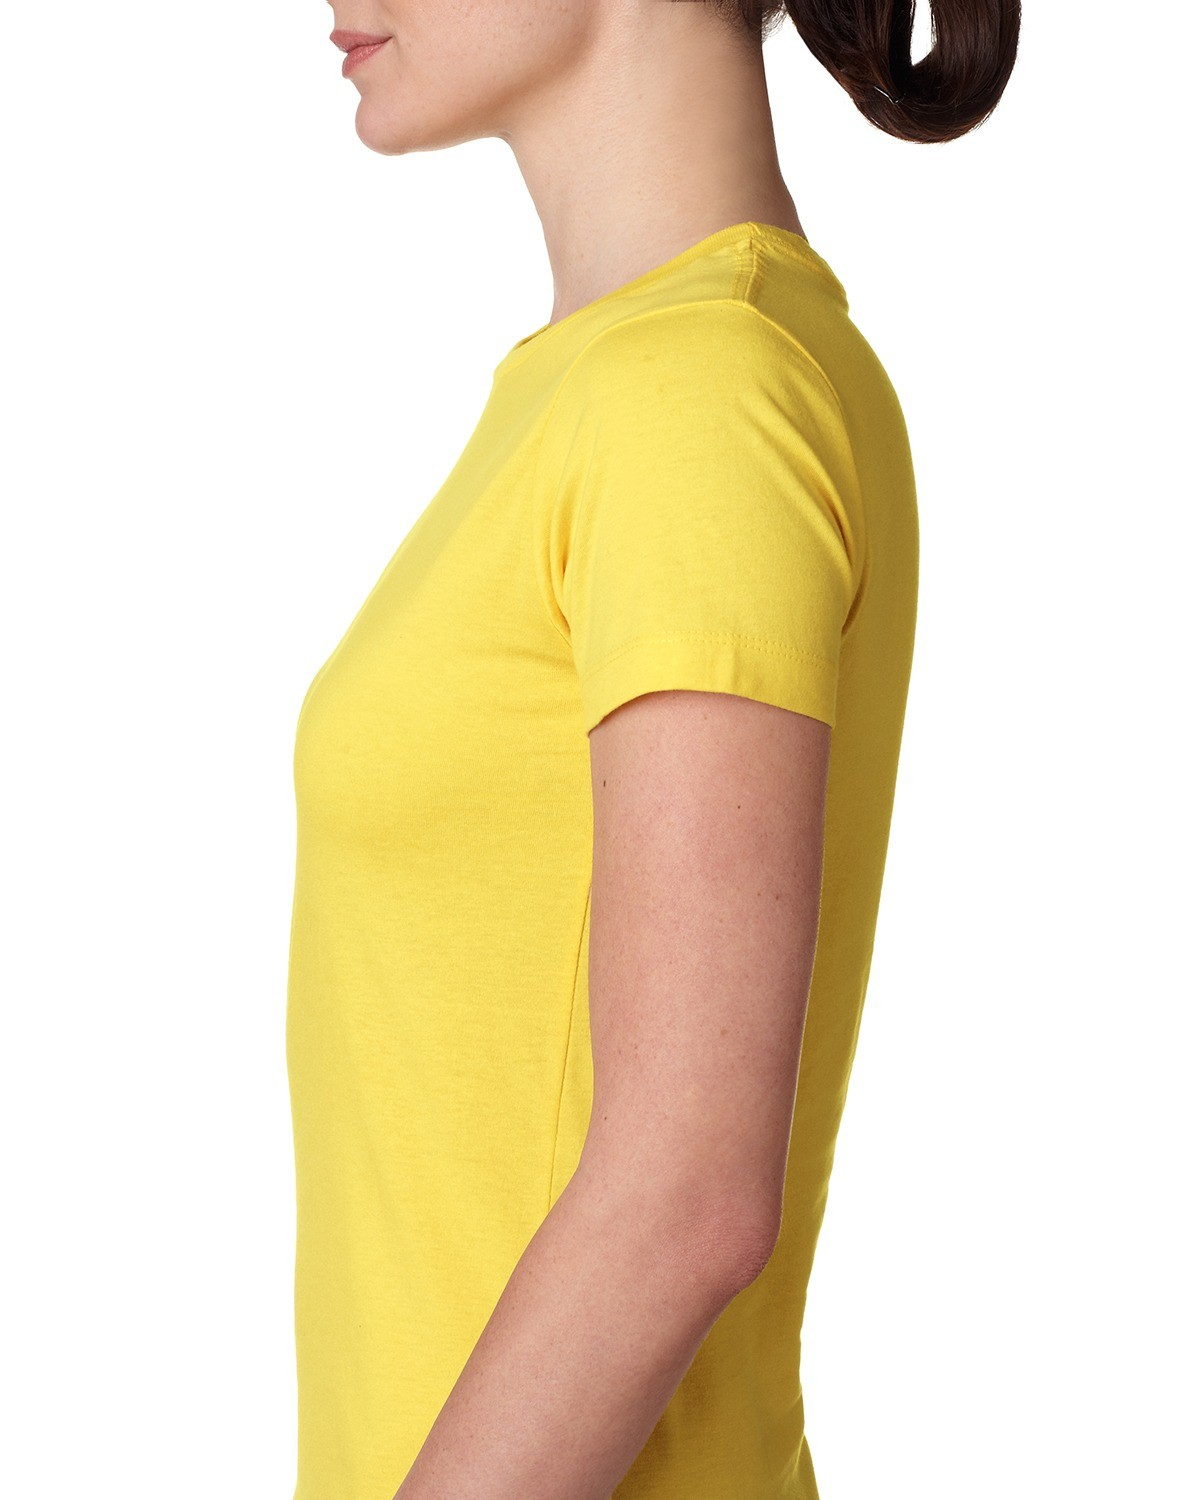 N3900 Next Level VIBRANT YELLOW